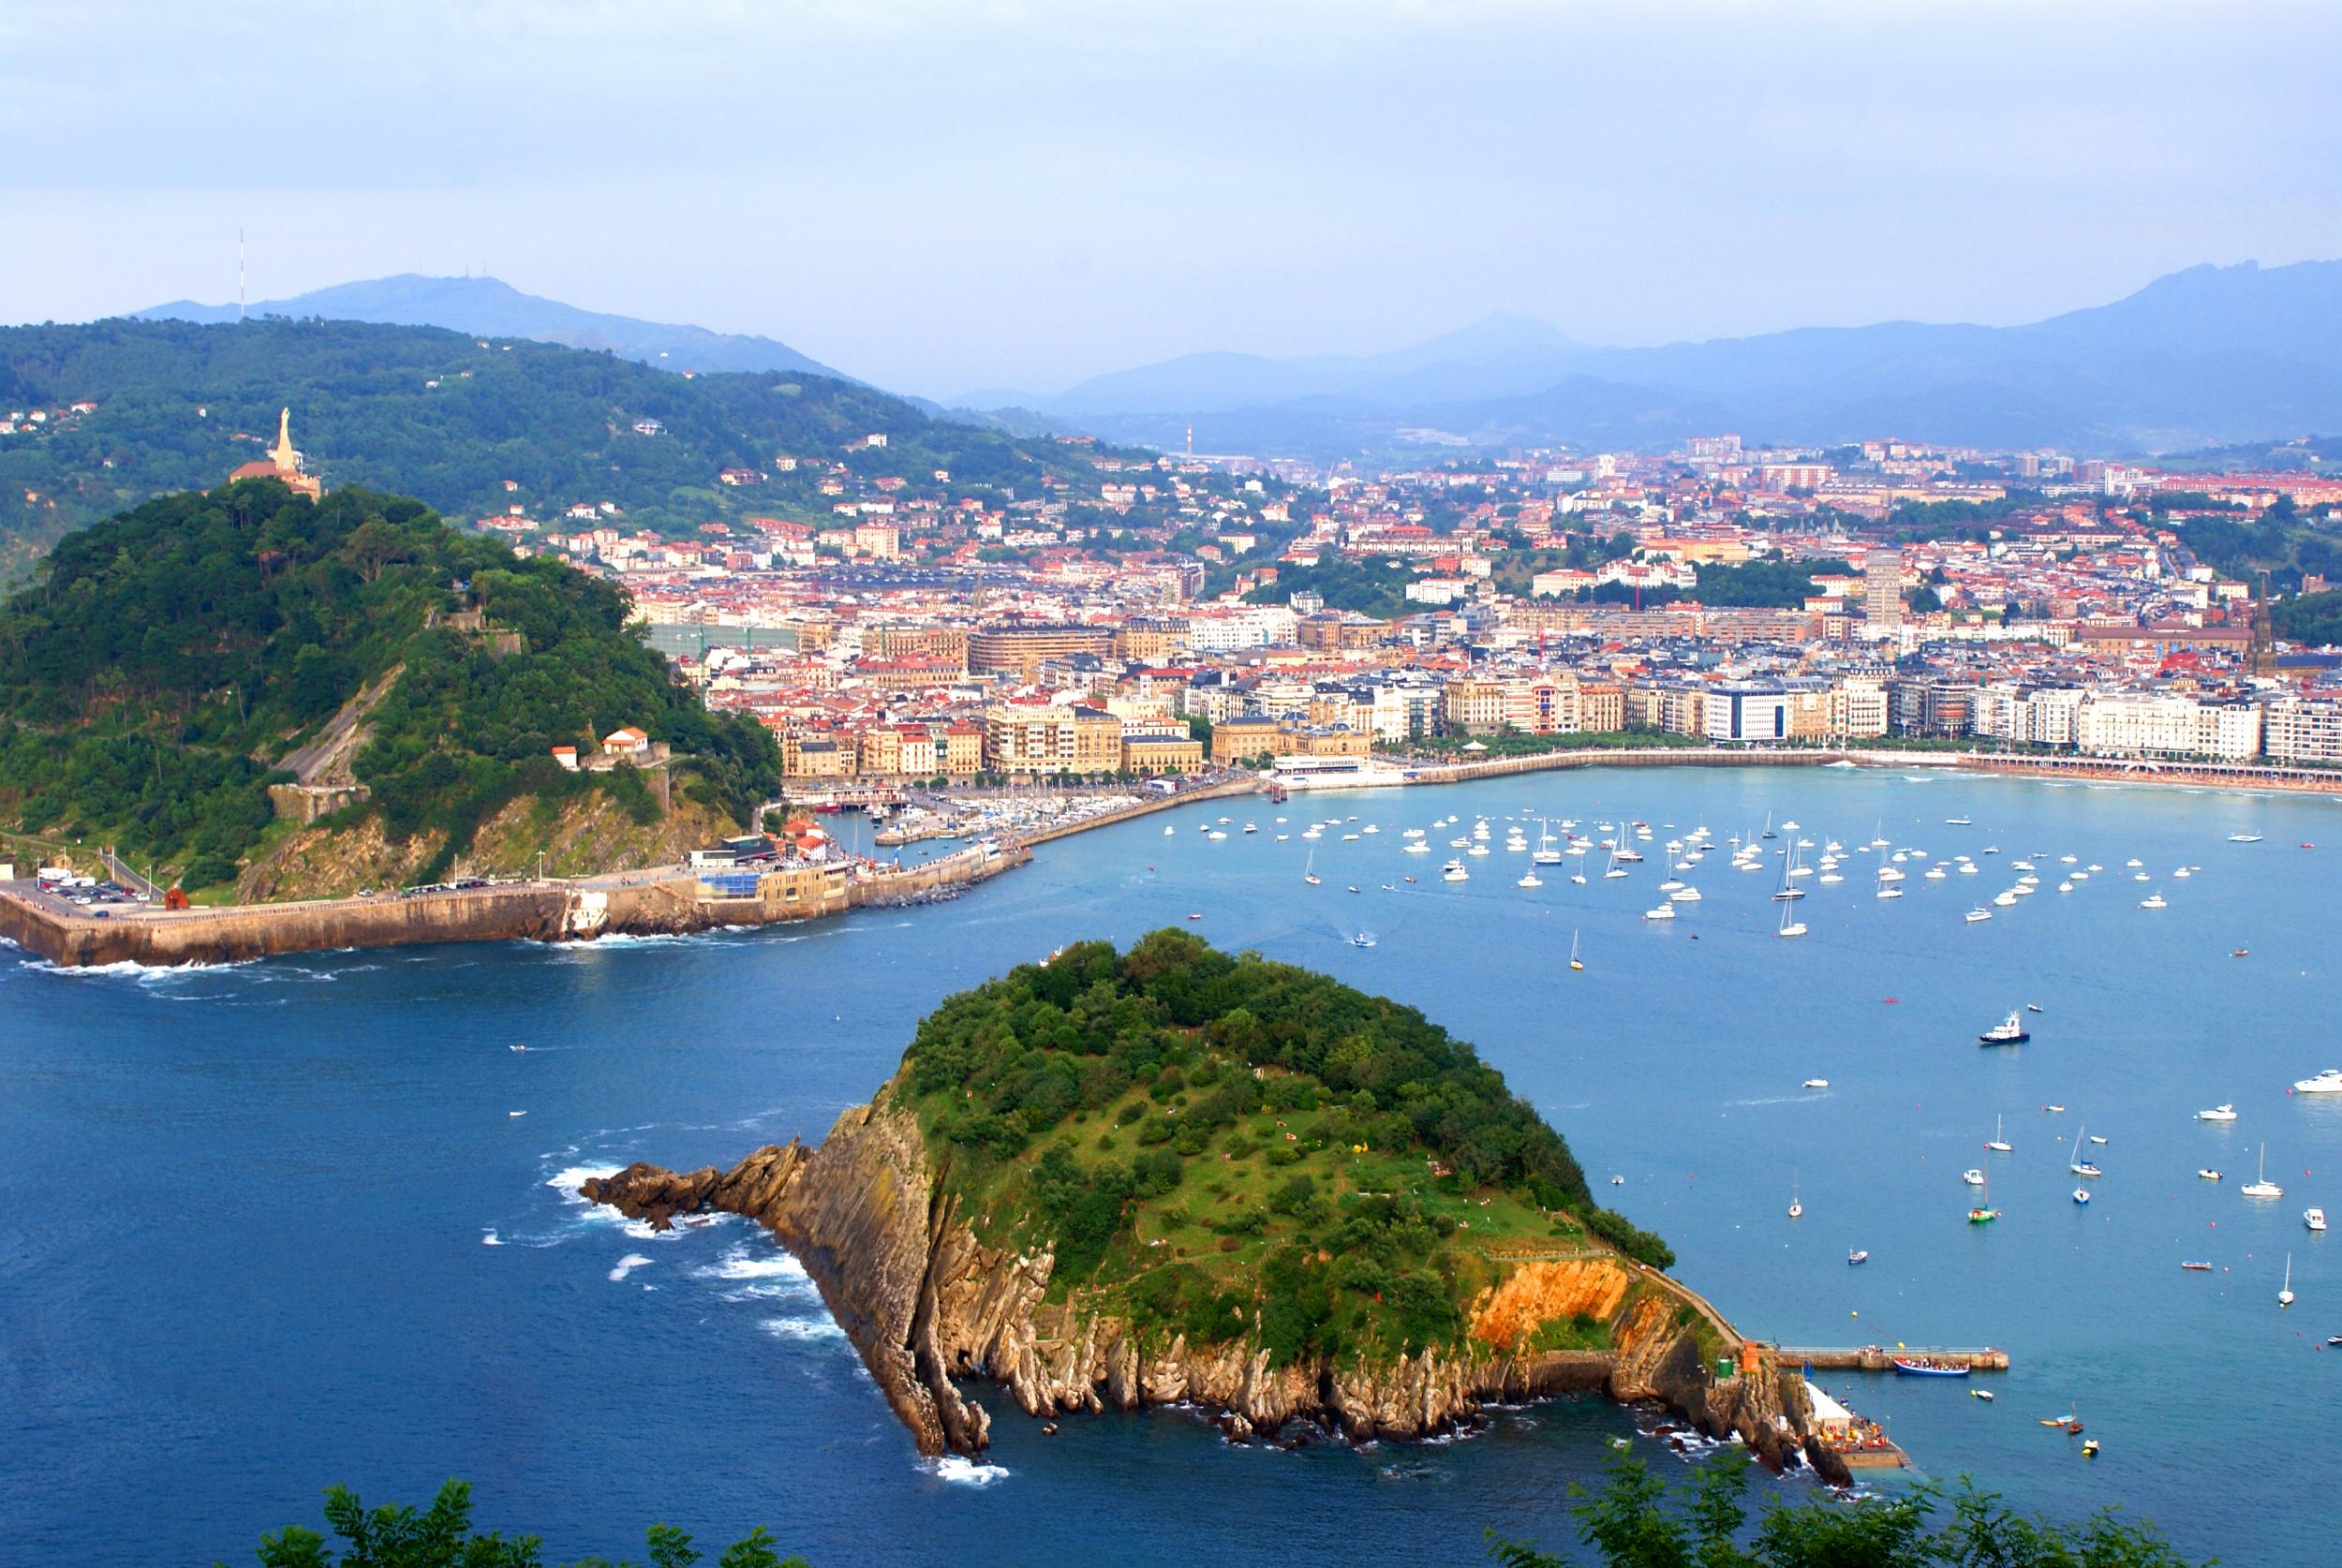 san sebastian dating site Having one and a half months left to finish my school year in the european  class in xanten, it is quite difficult to sum up all the new experiences that i have  had.